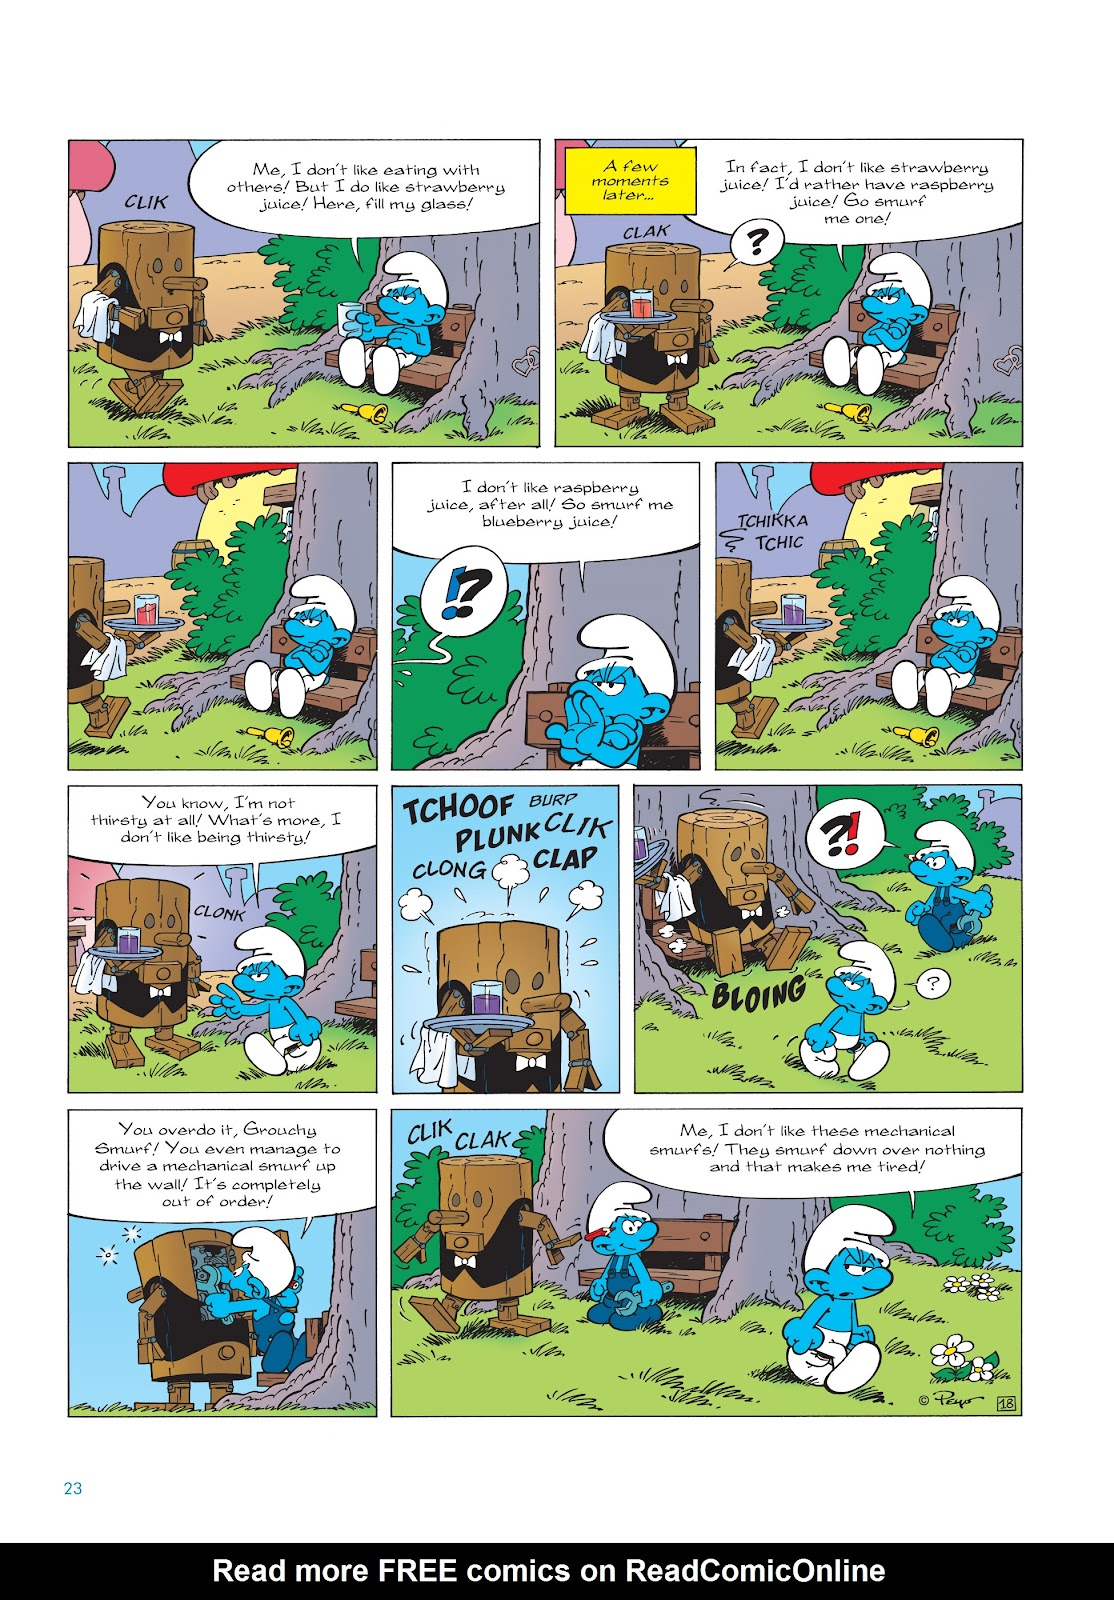 Read online The Smurfs comic -  Issue #23 - 23